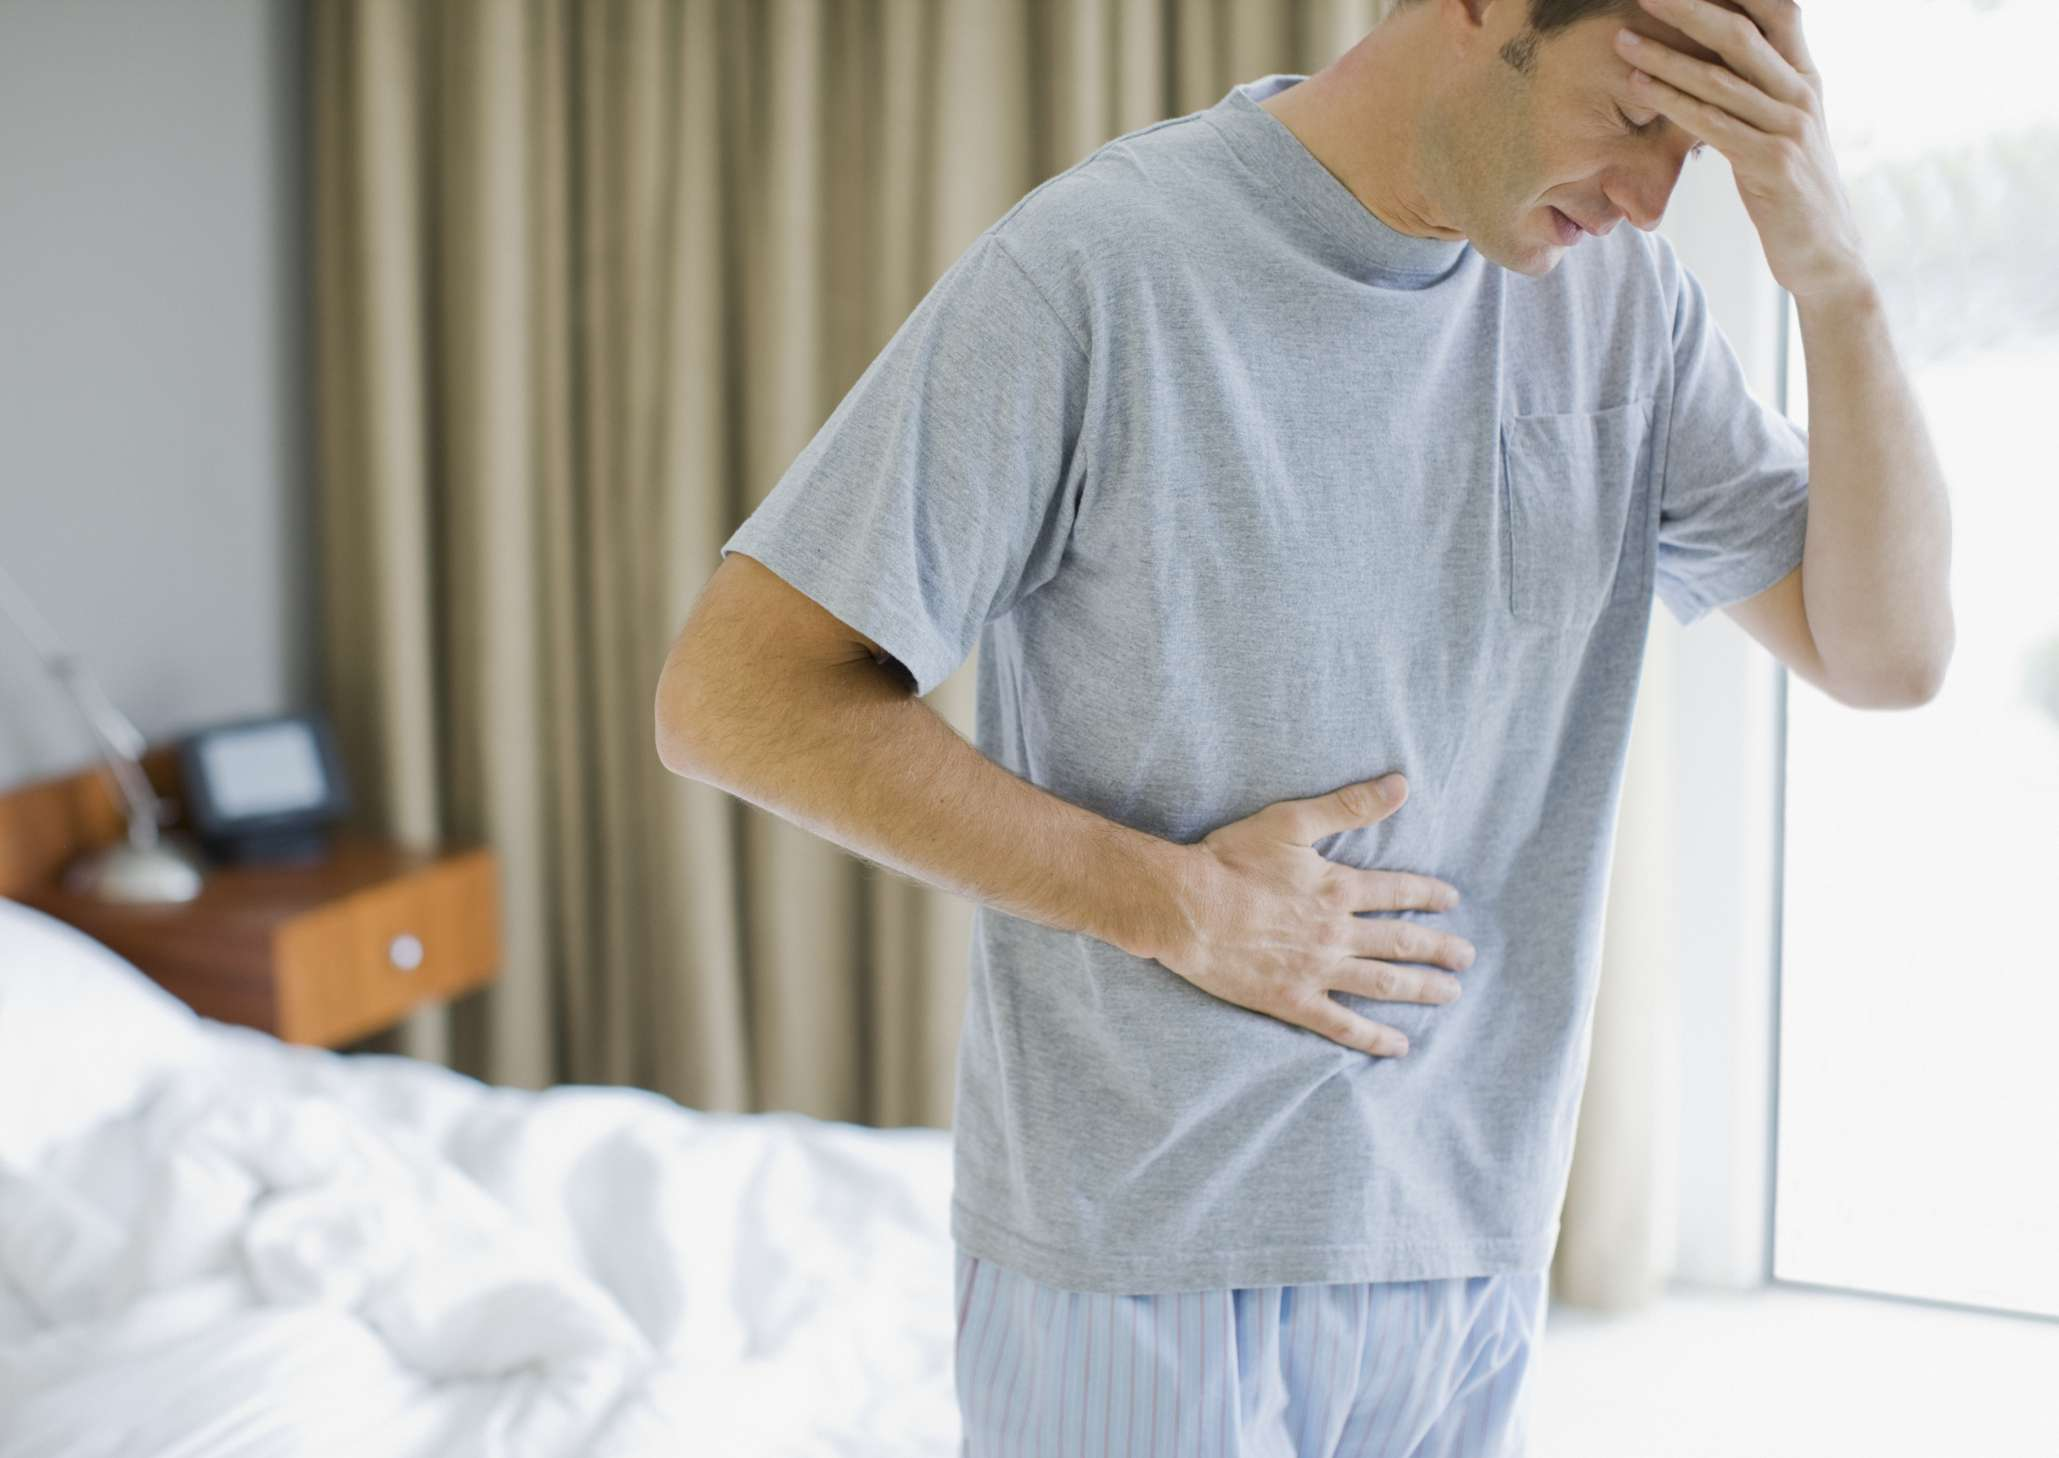 A man holding his stomach in pain